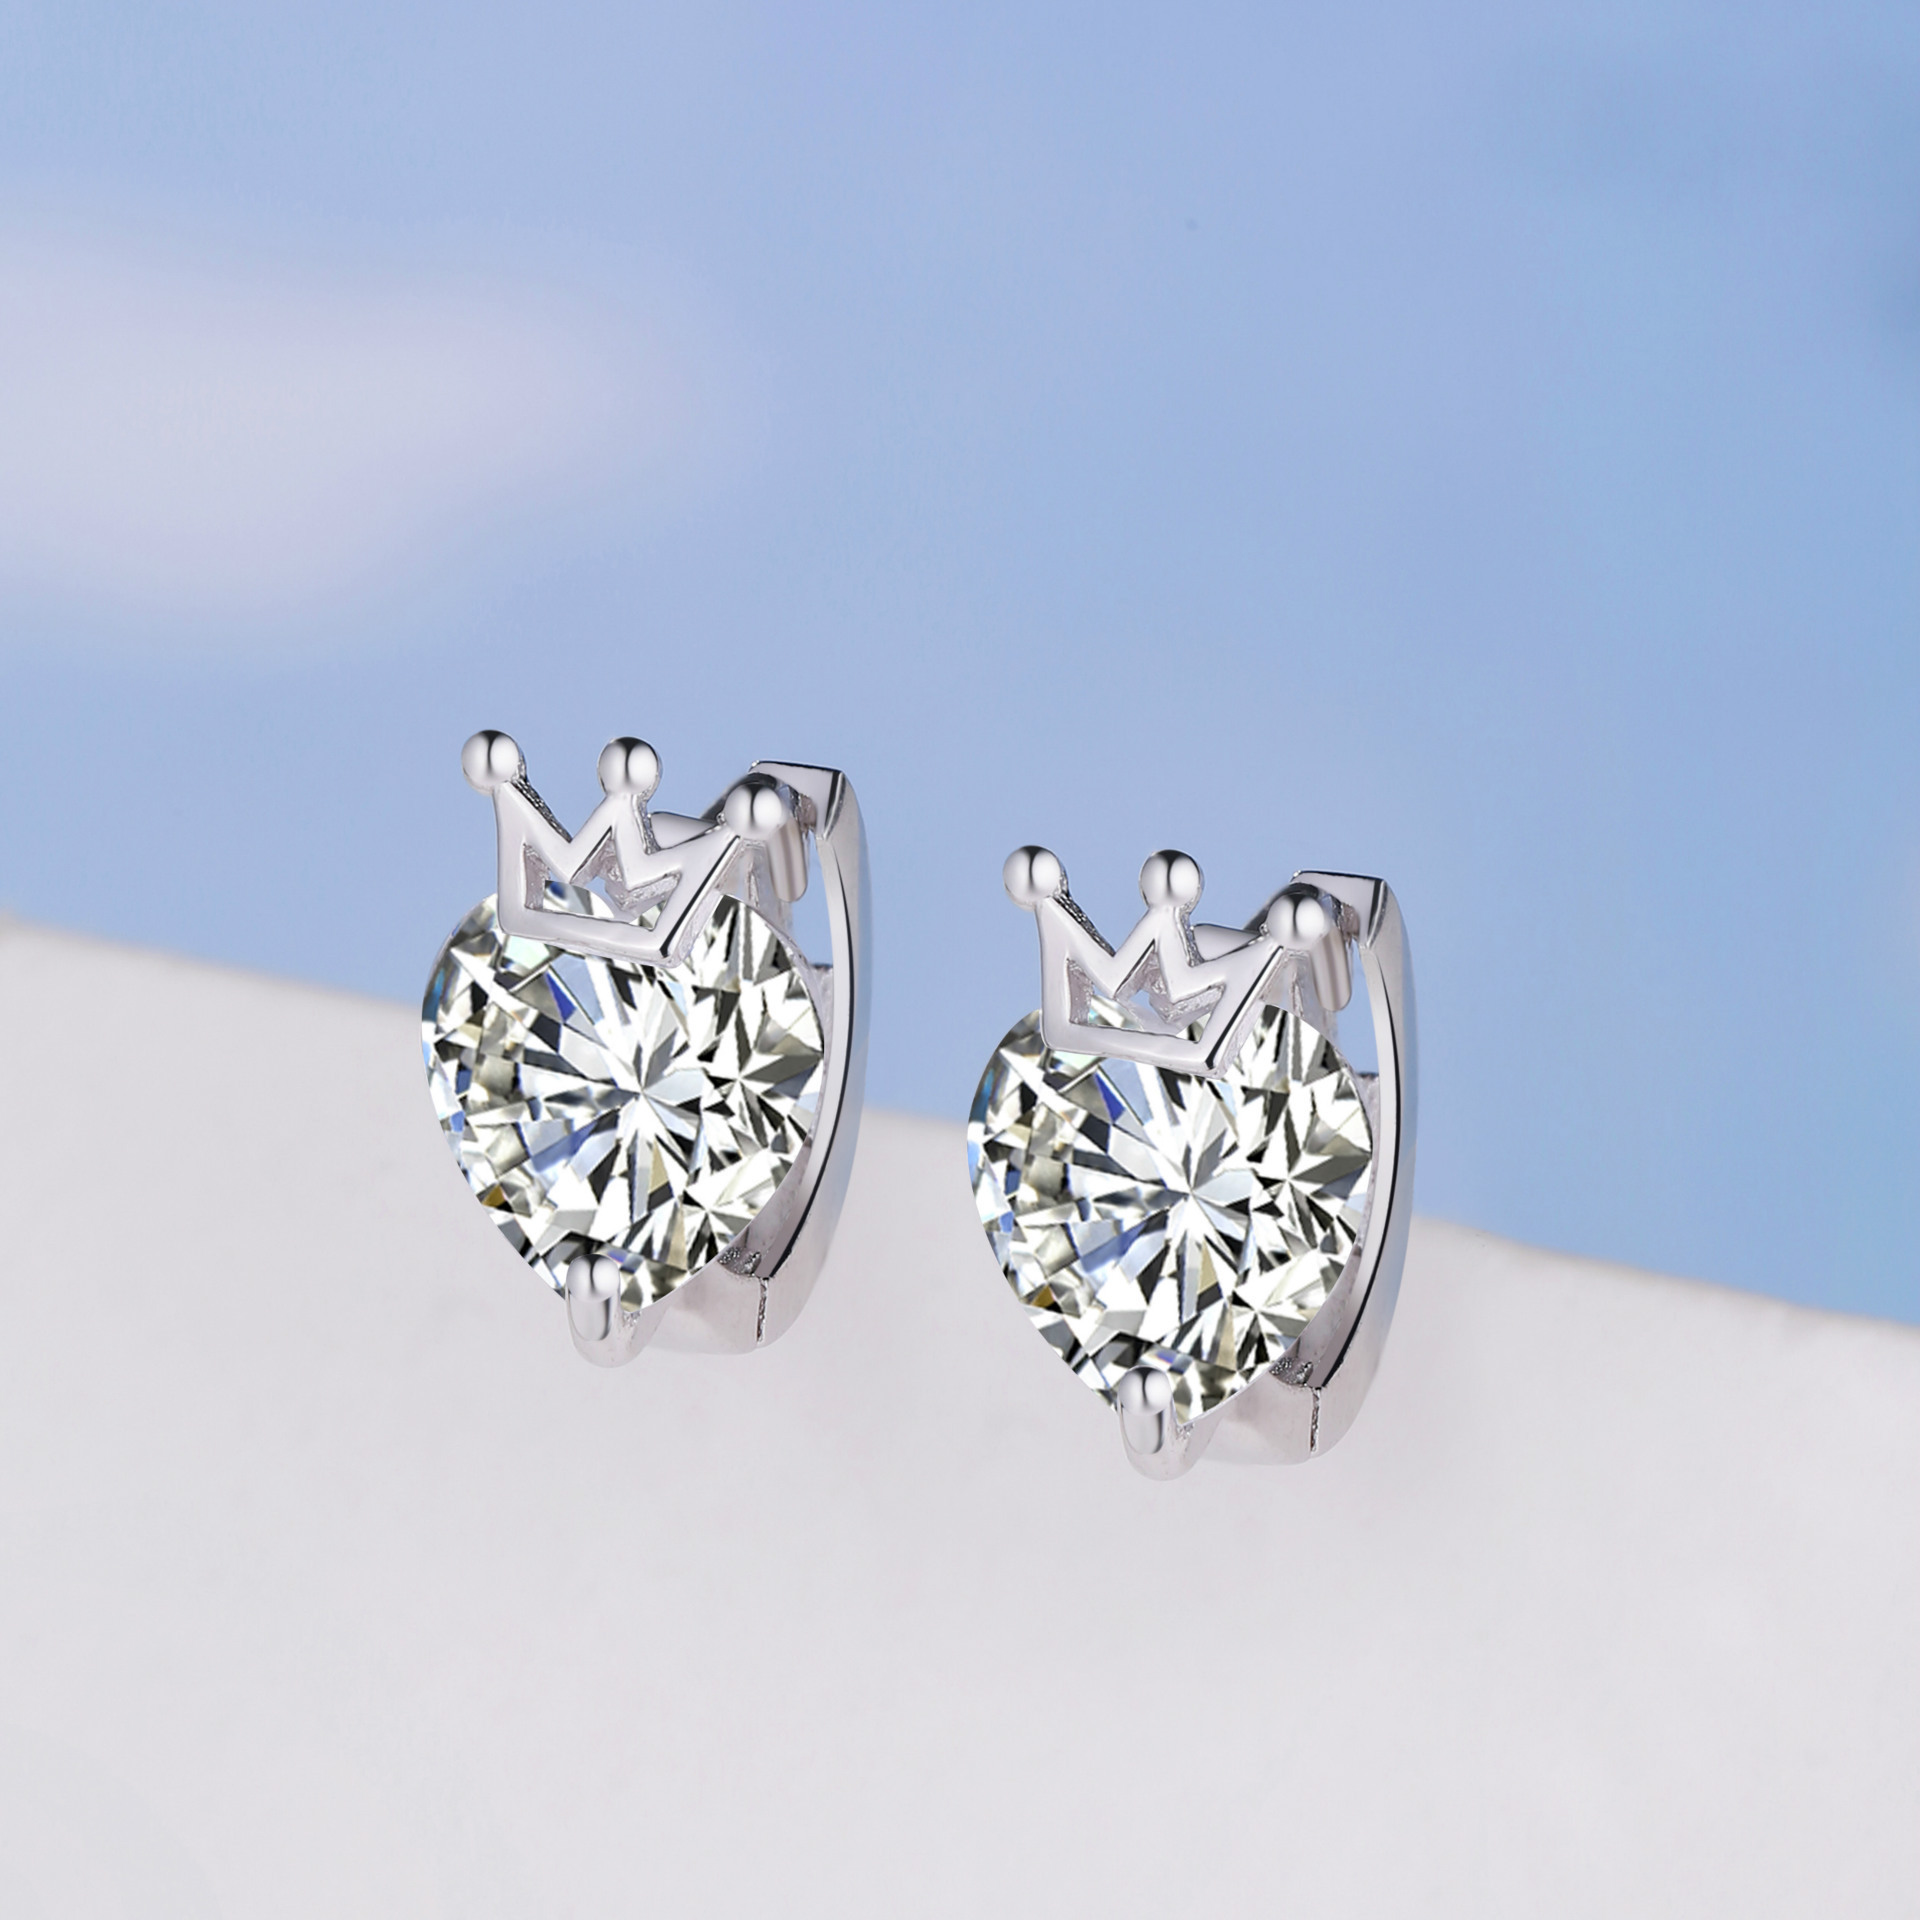 silver small and pure and fresh temperament female silver crown zircon ear clip fashionable joker products wholesale